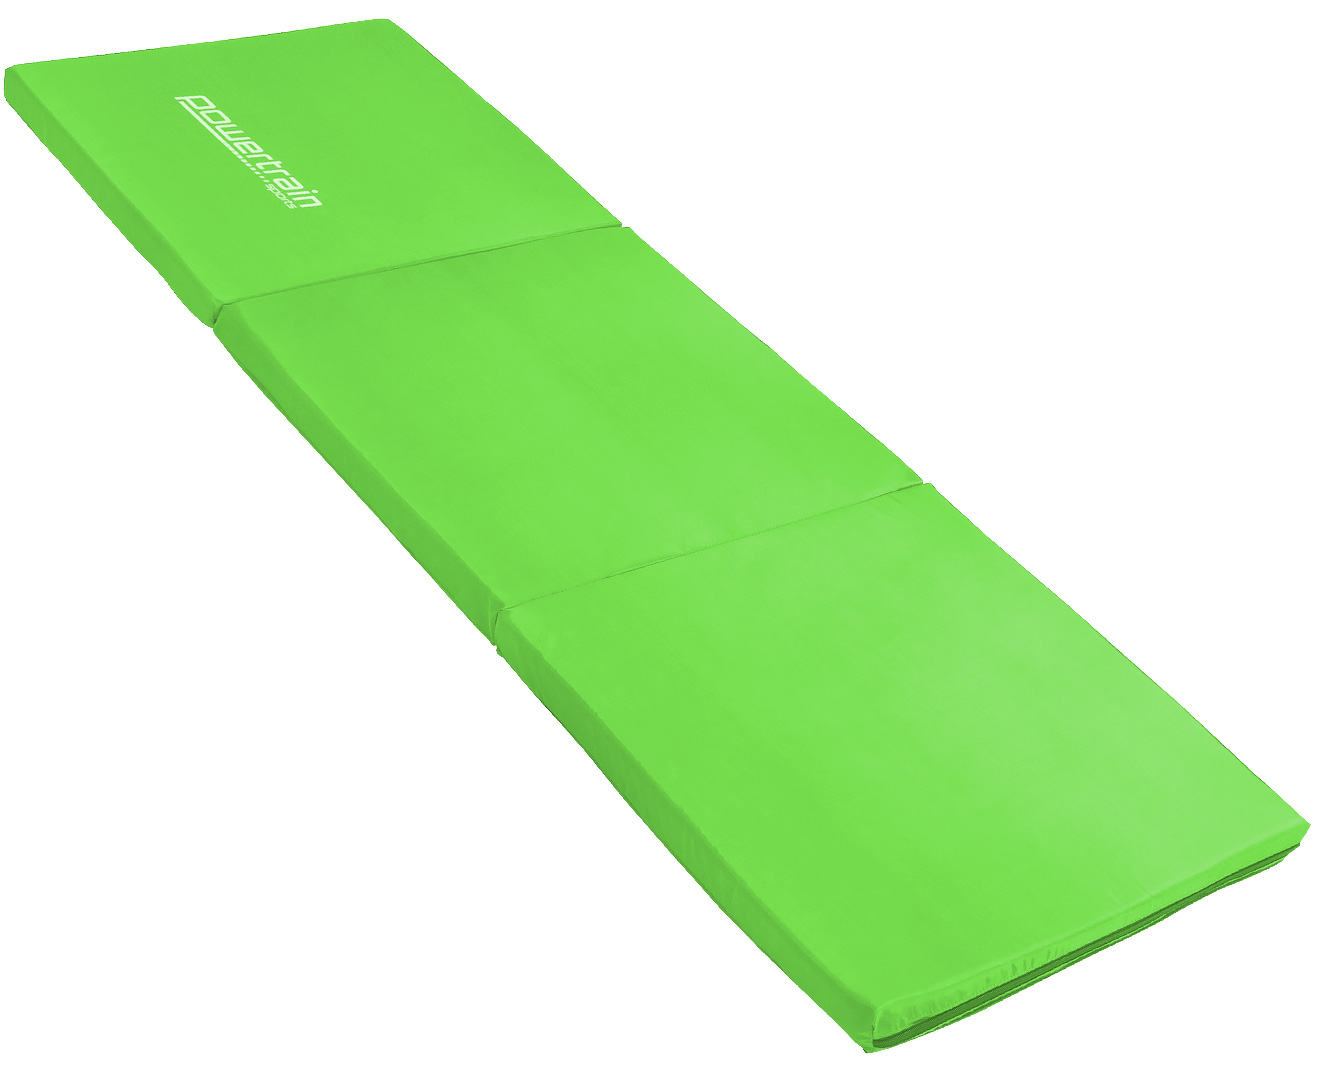 Powertrain Yoga Exercise Tri-fold Mat 180x60x5cm - Green